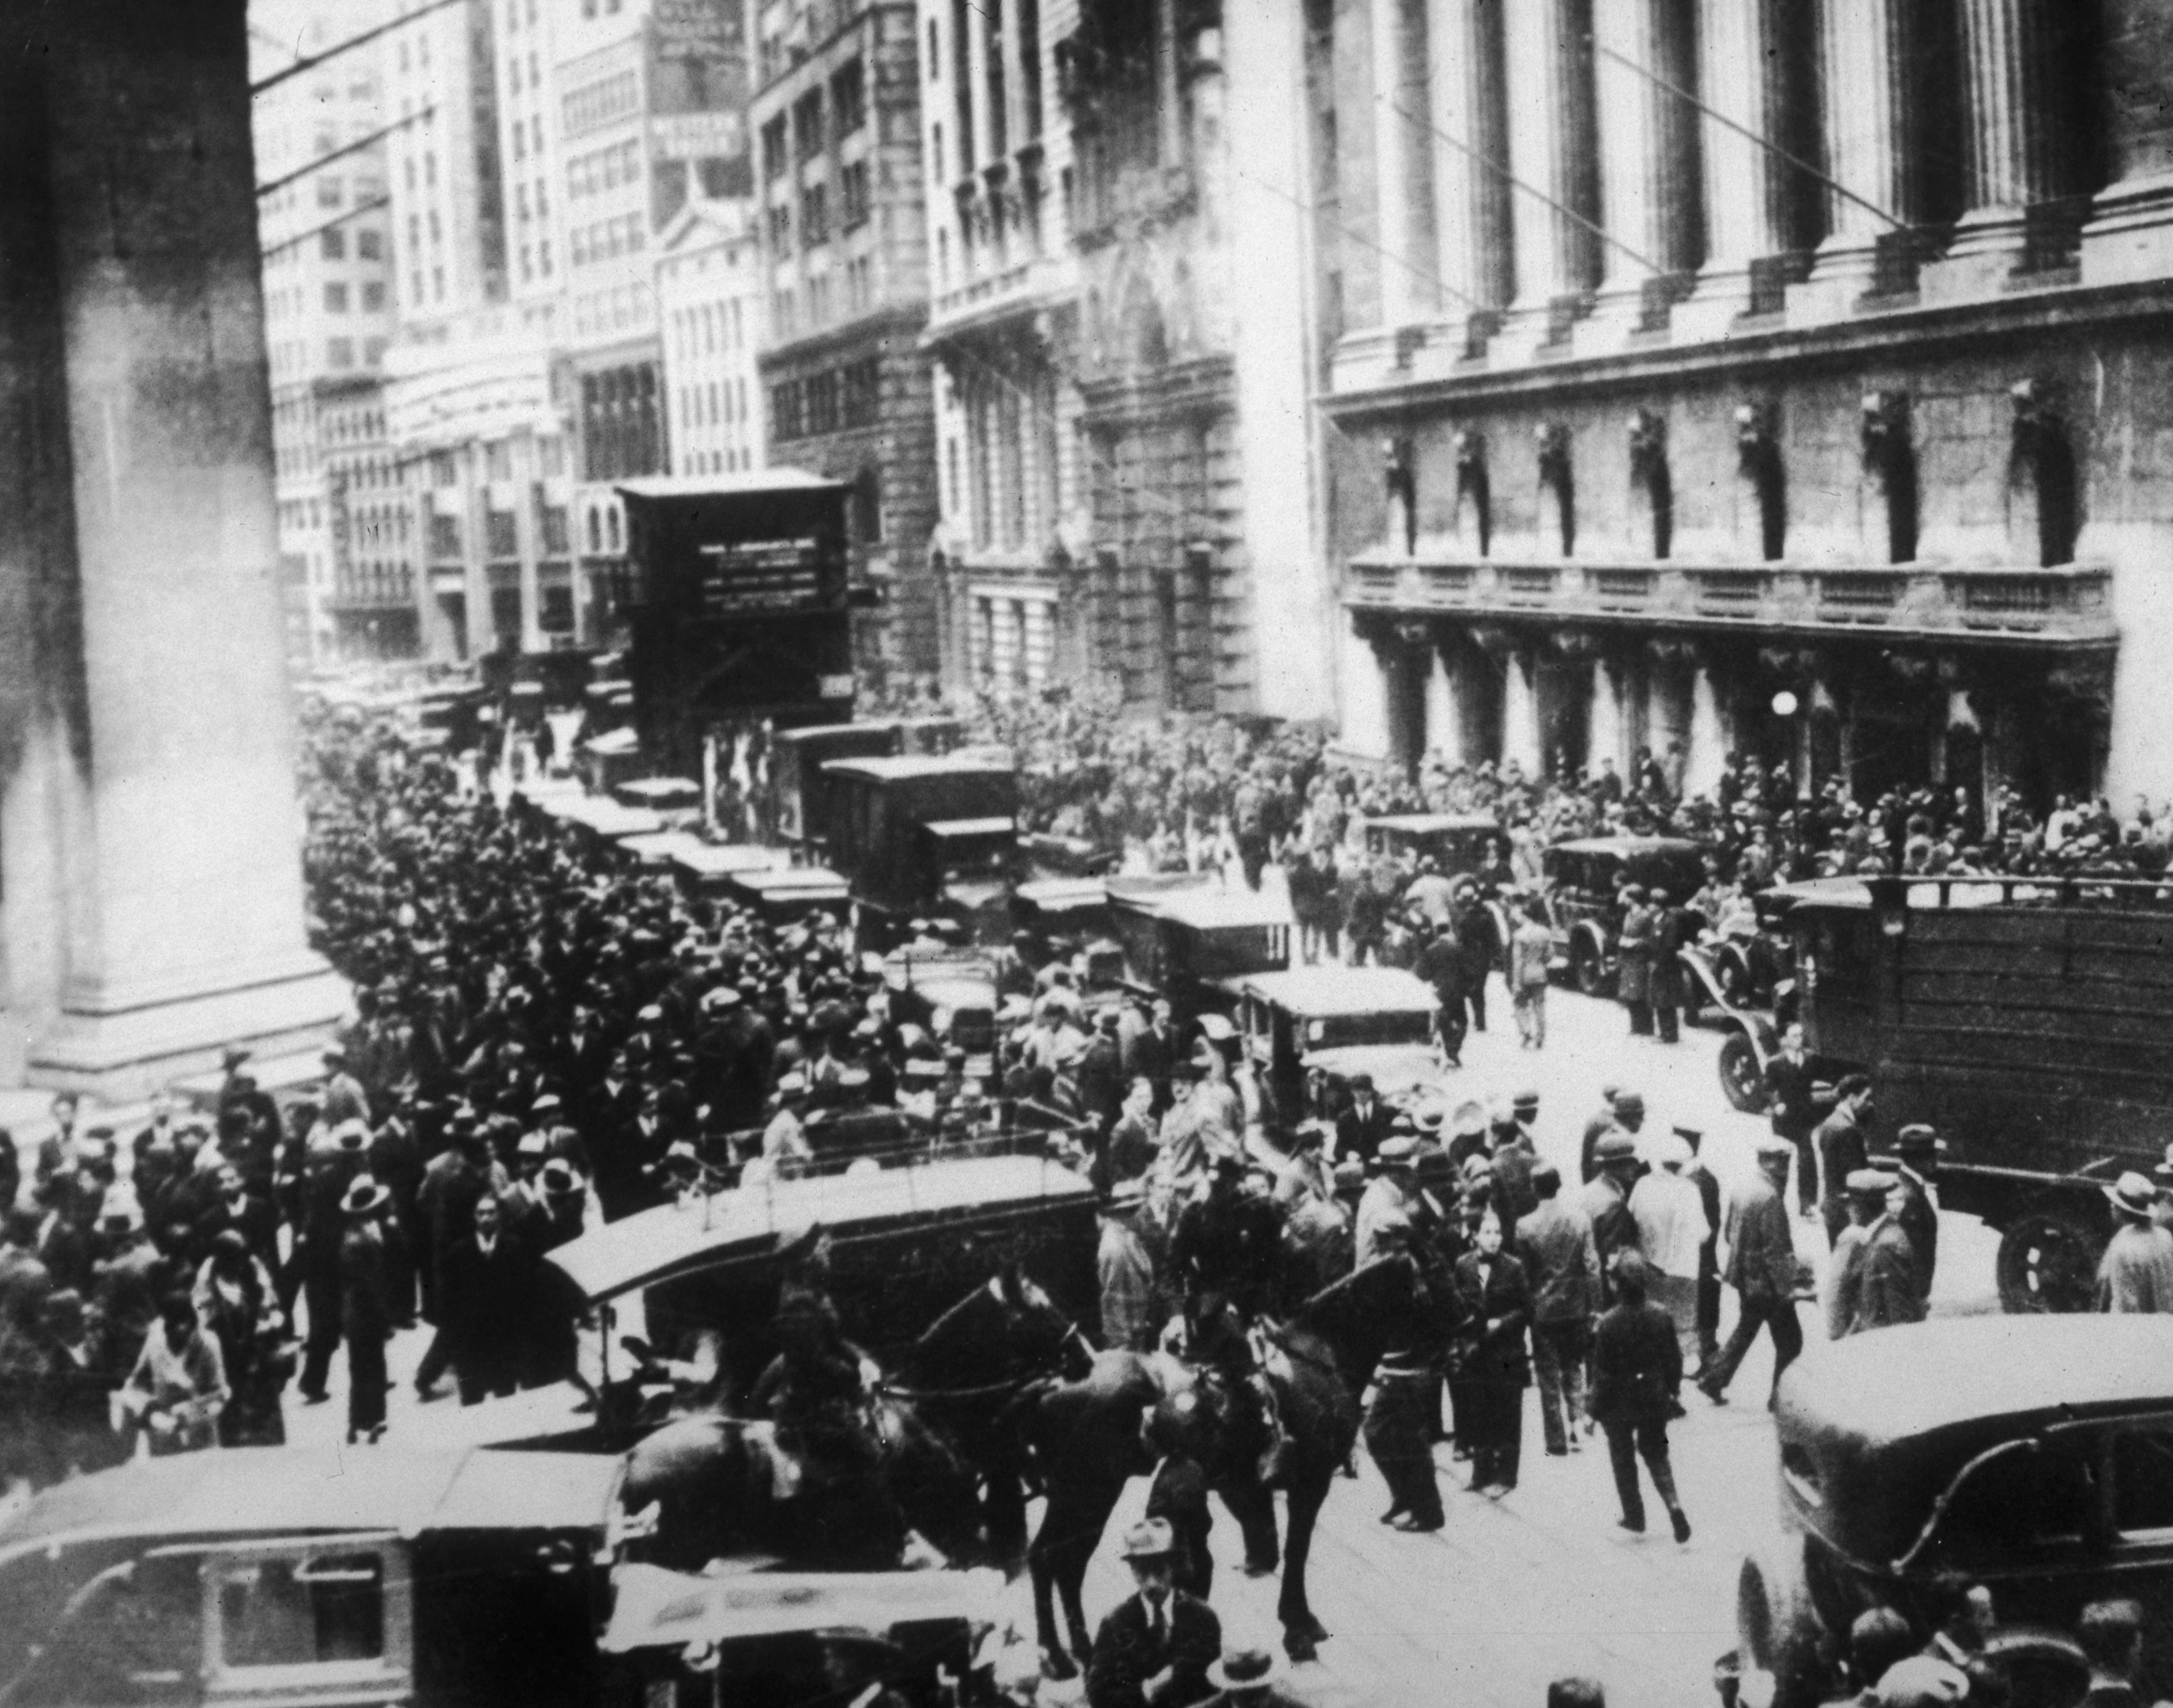 october 29th 1929 stock market